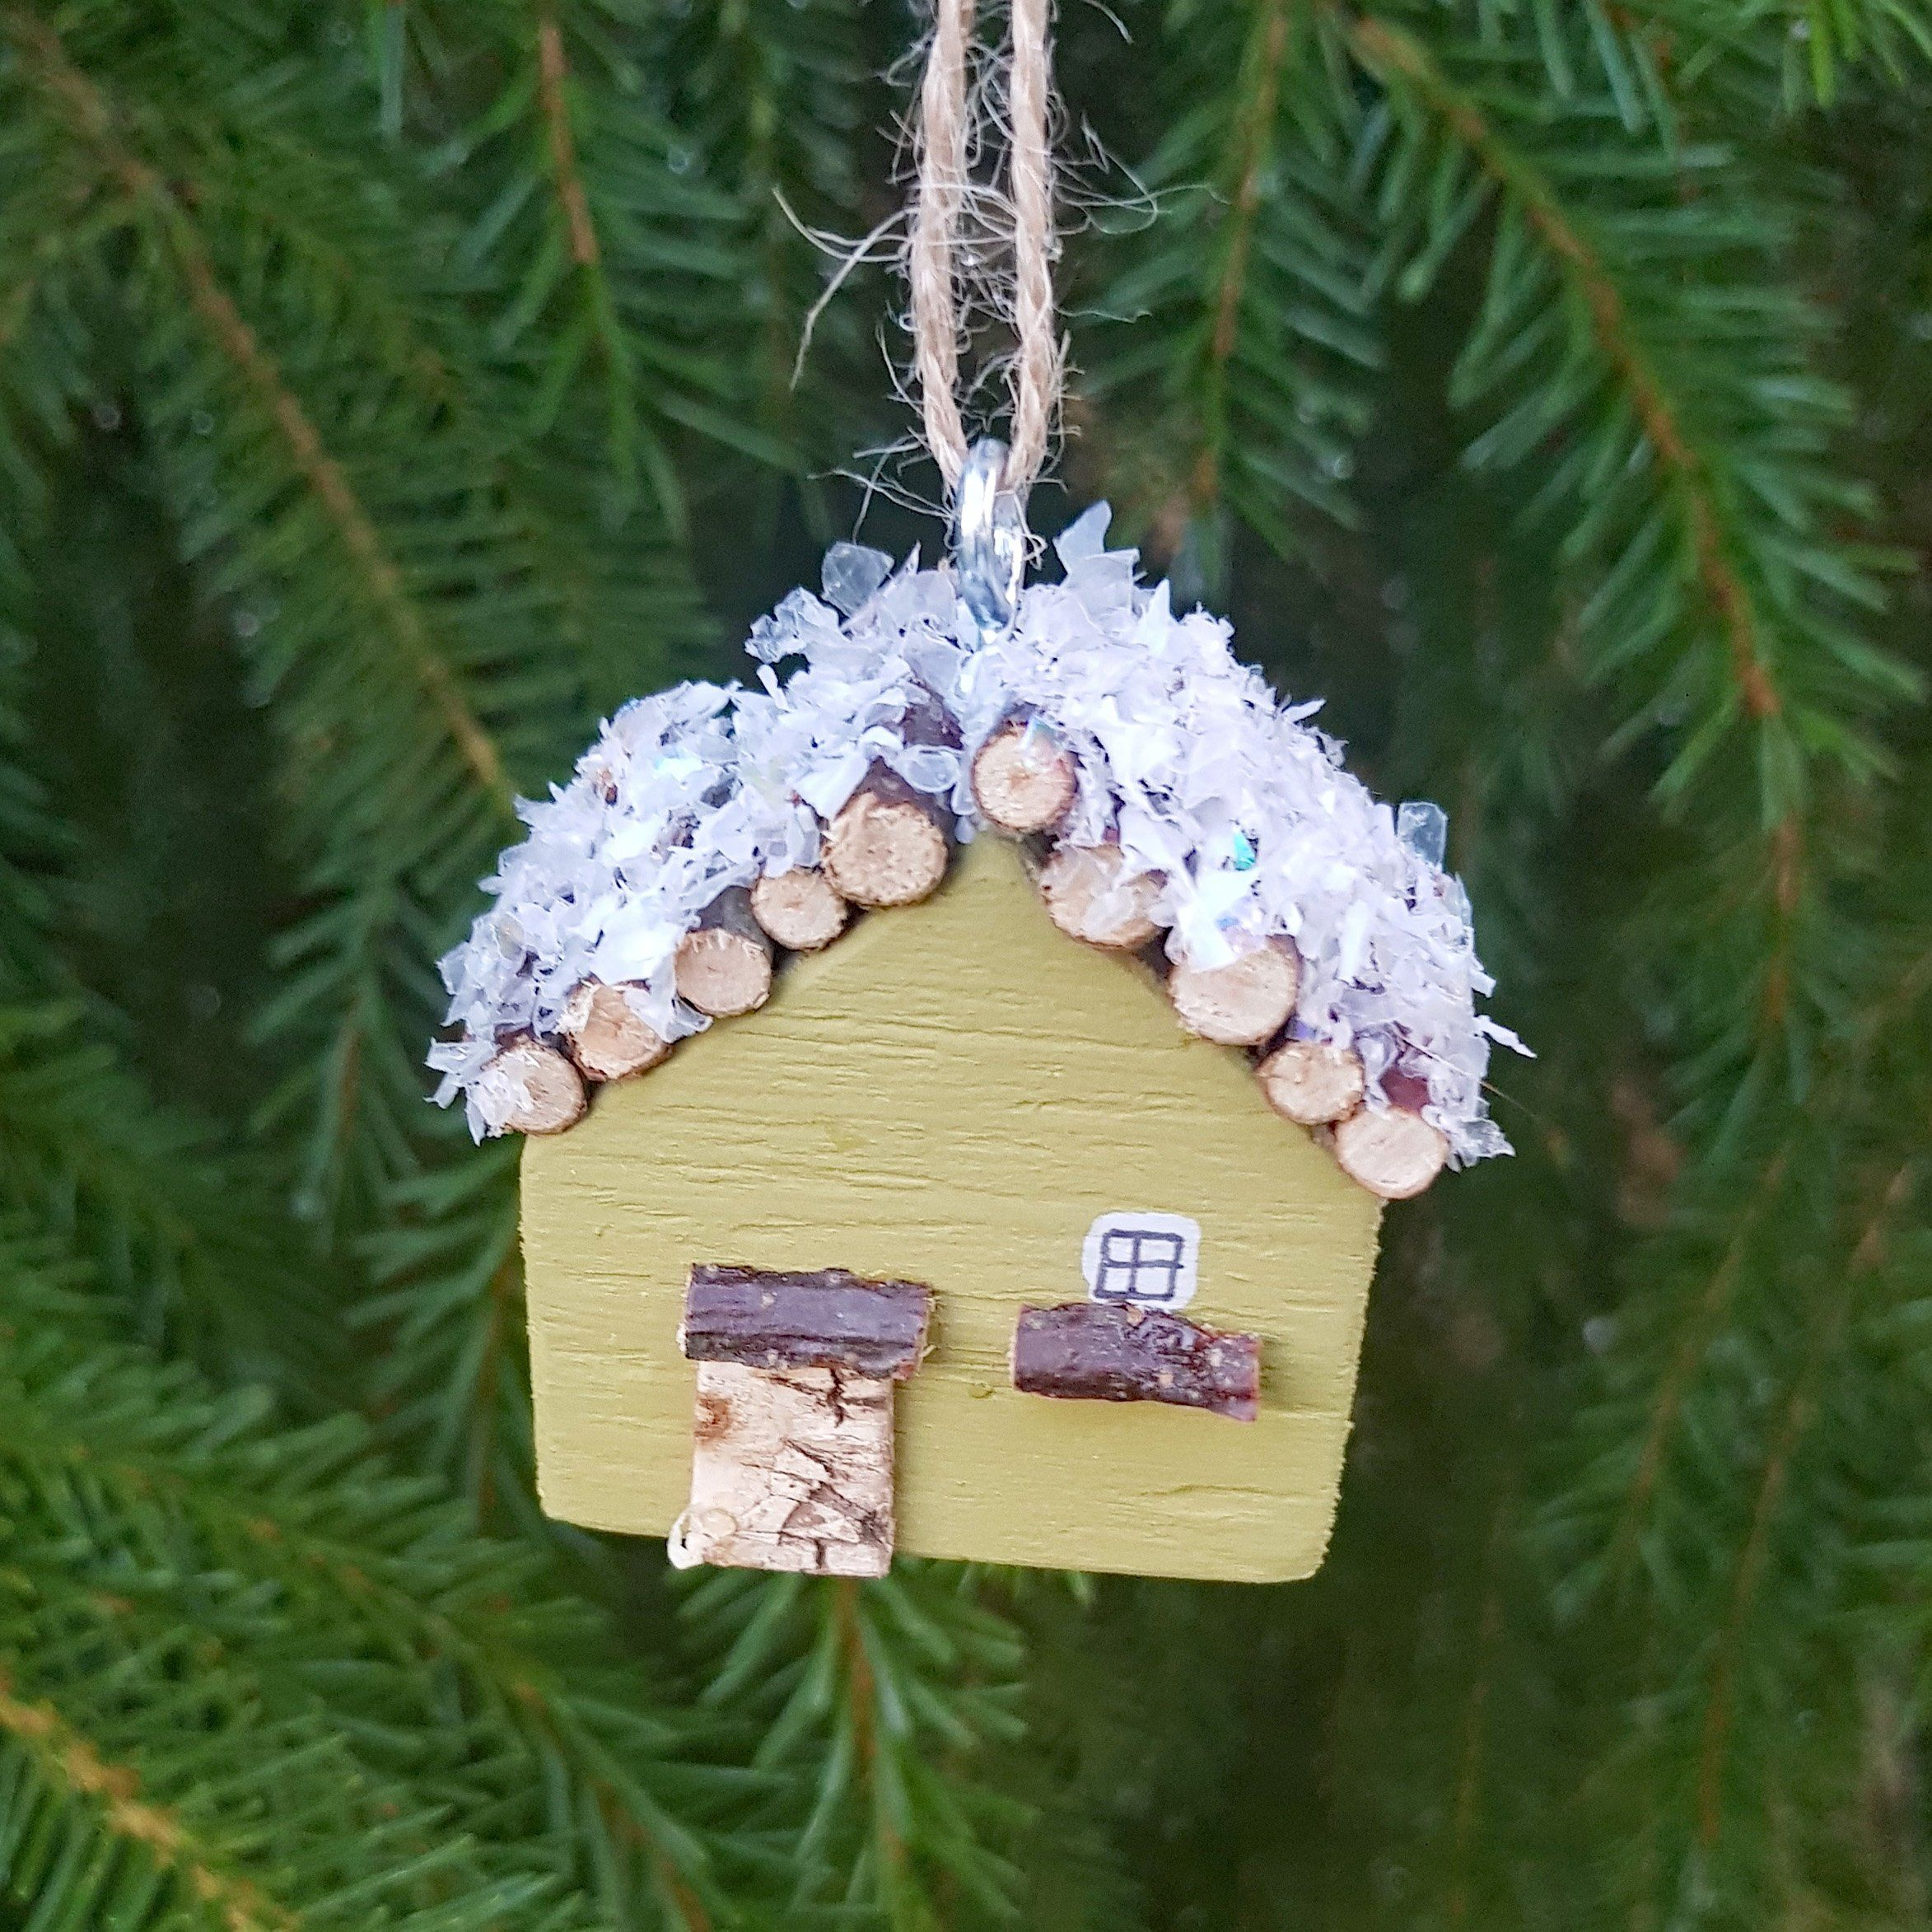 Cabin Ornament Holiday Decor Xmas Decor Miniature Cabin Ornaments Wood Cabin Christmas Decoration Christmas Miniatures Rustic Holiday Decor Cabin Christmas Holiday Decor Rustic Holiday Decor